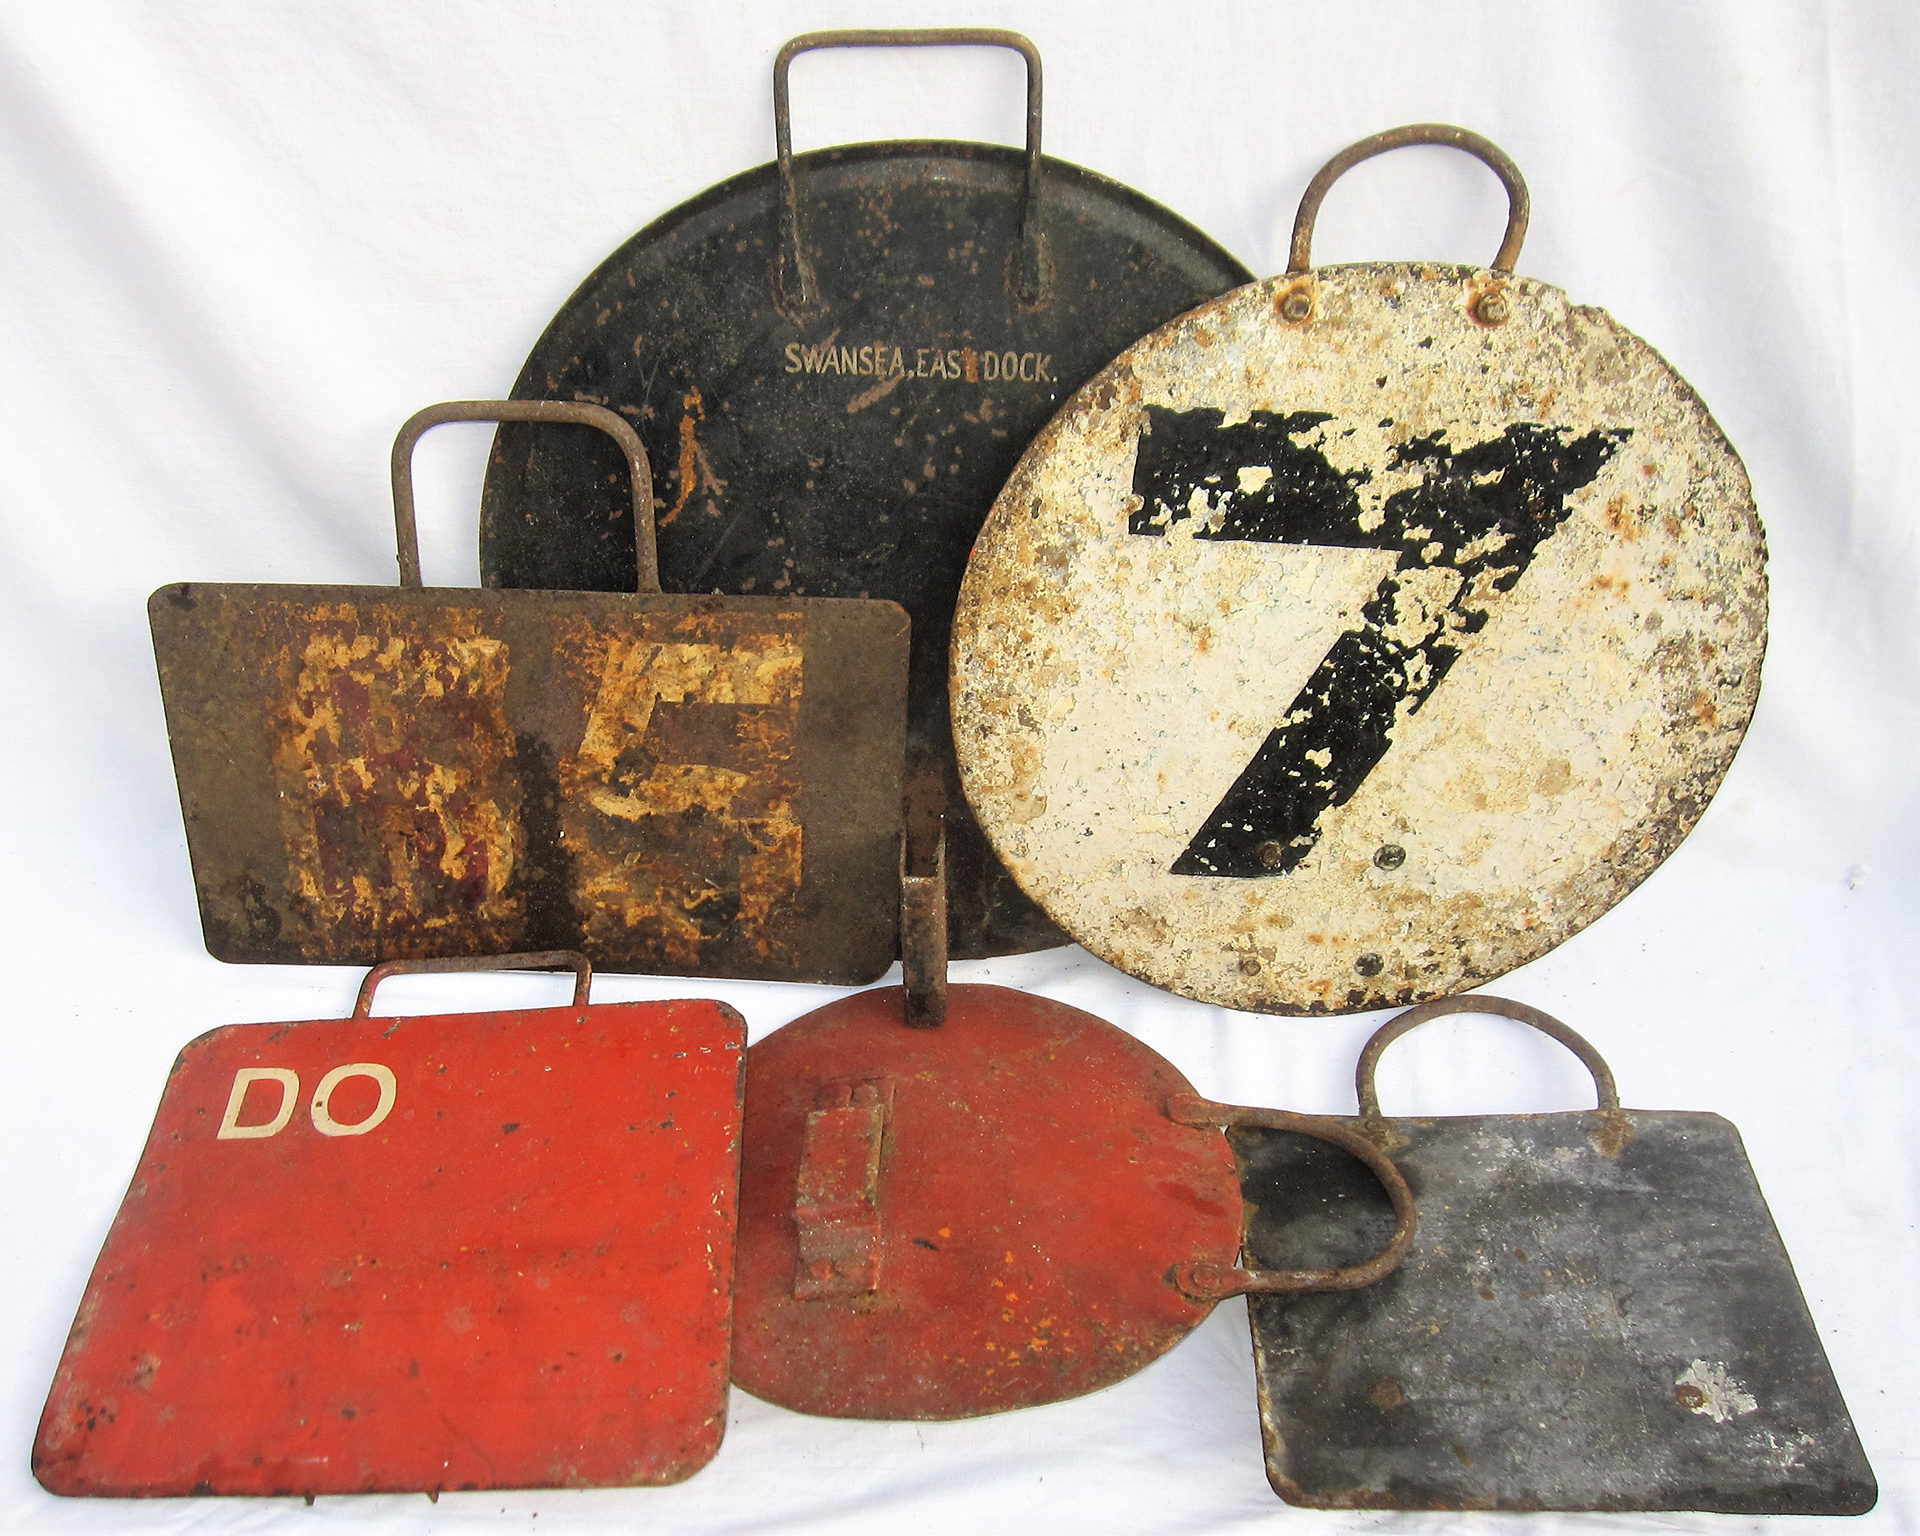 A lot containing a collection of Locomotive head discs. One disc is painted SWANSEA EAST DOCK. All